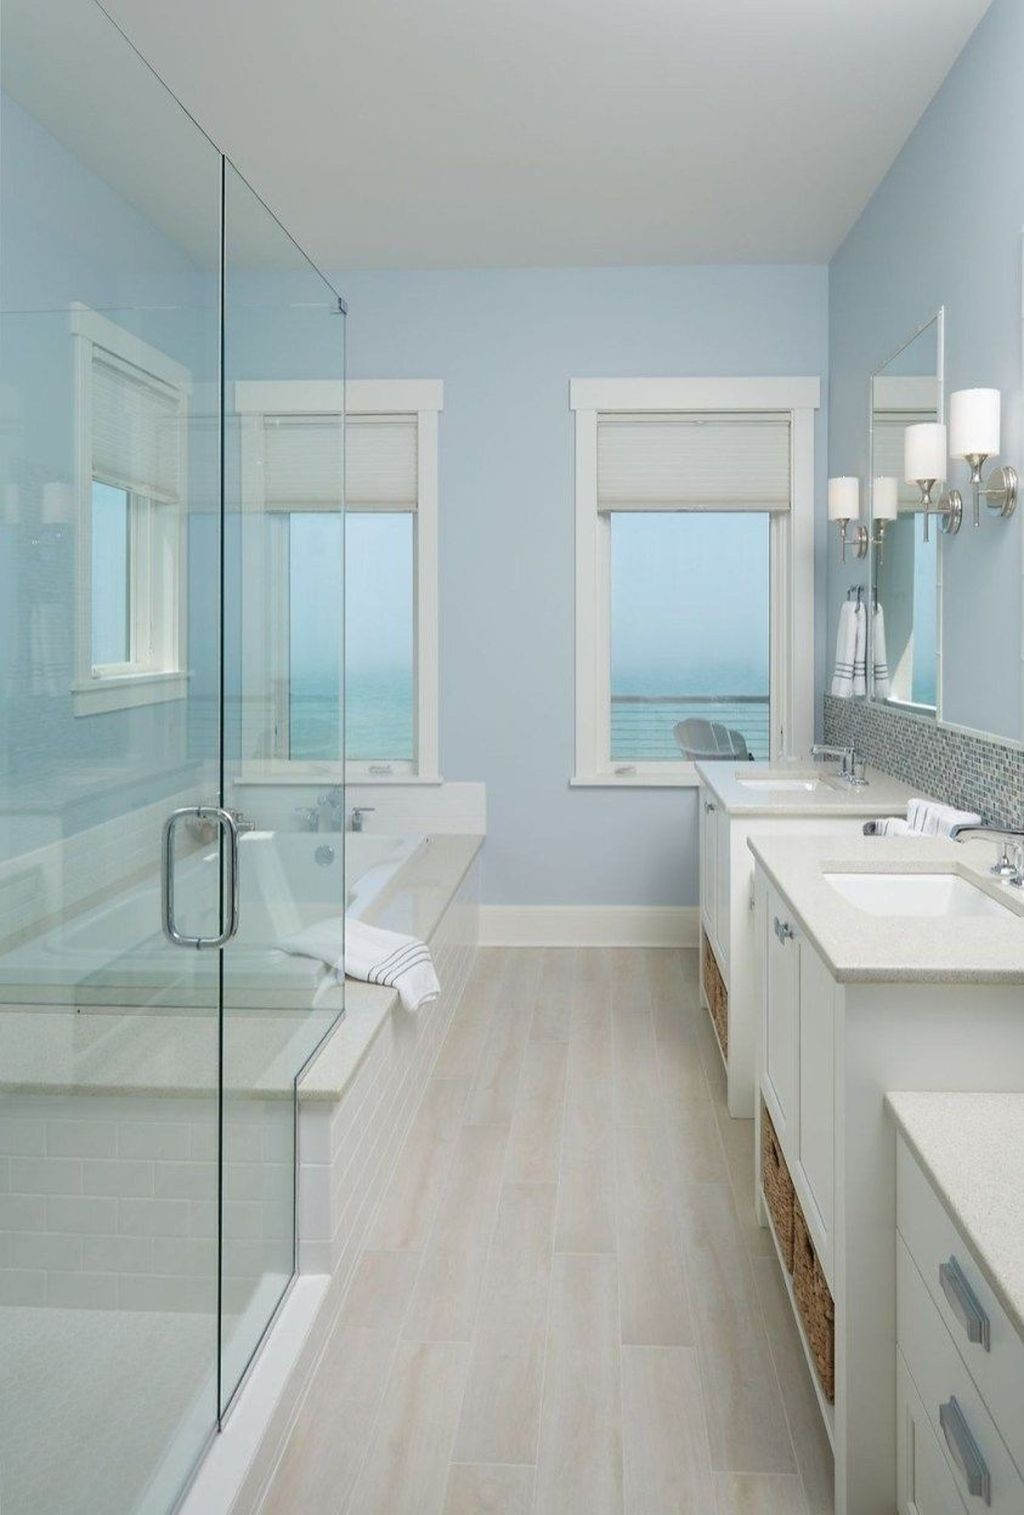 Fabulous Bathroom Decor Ideas With Coastal Style 09